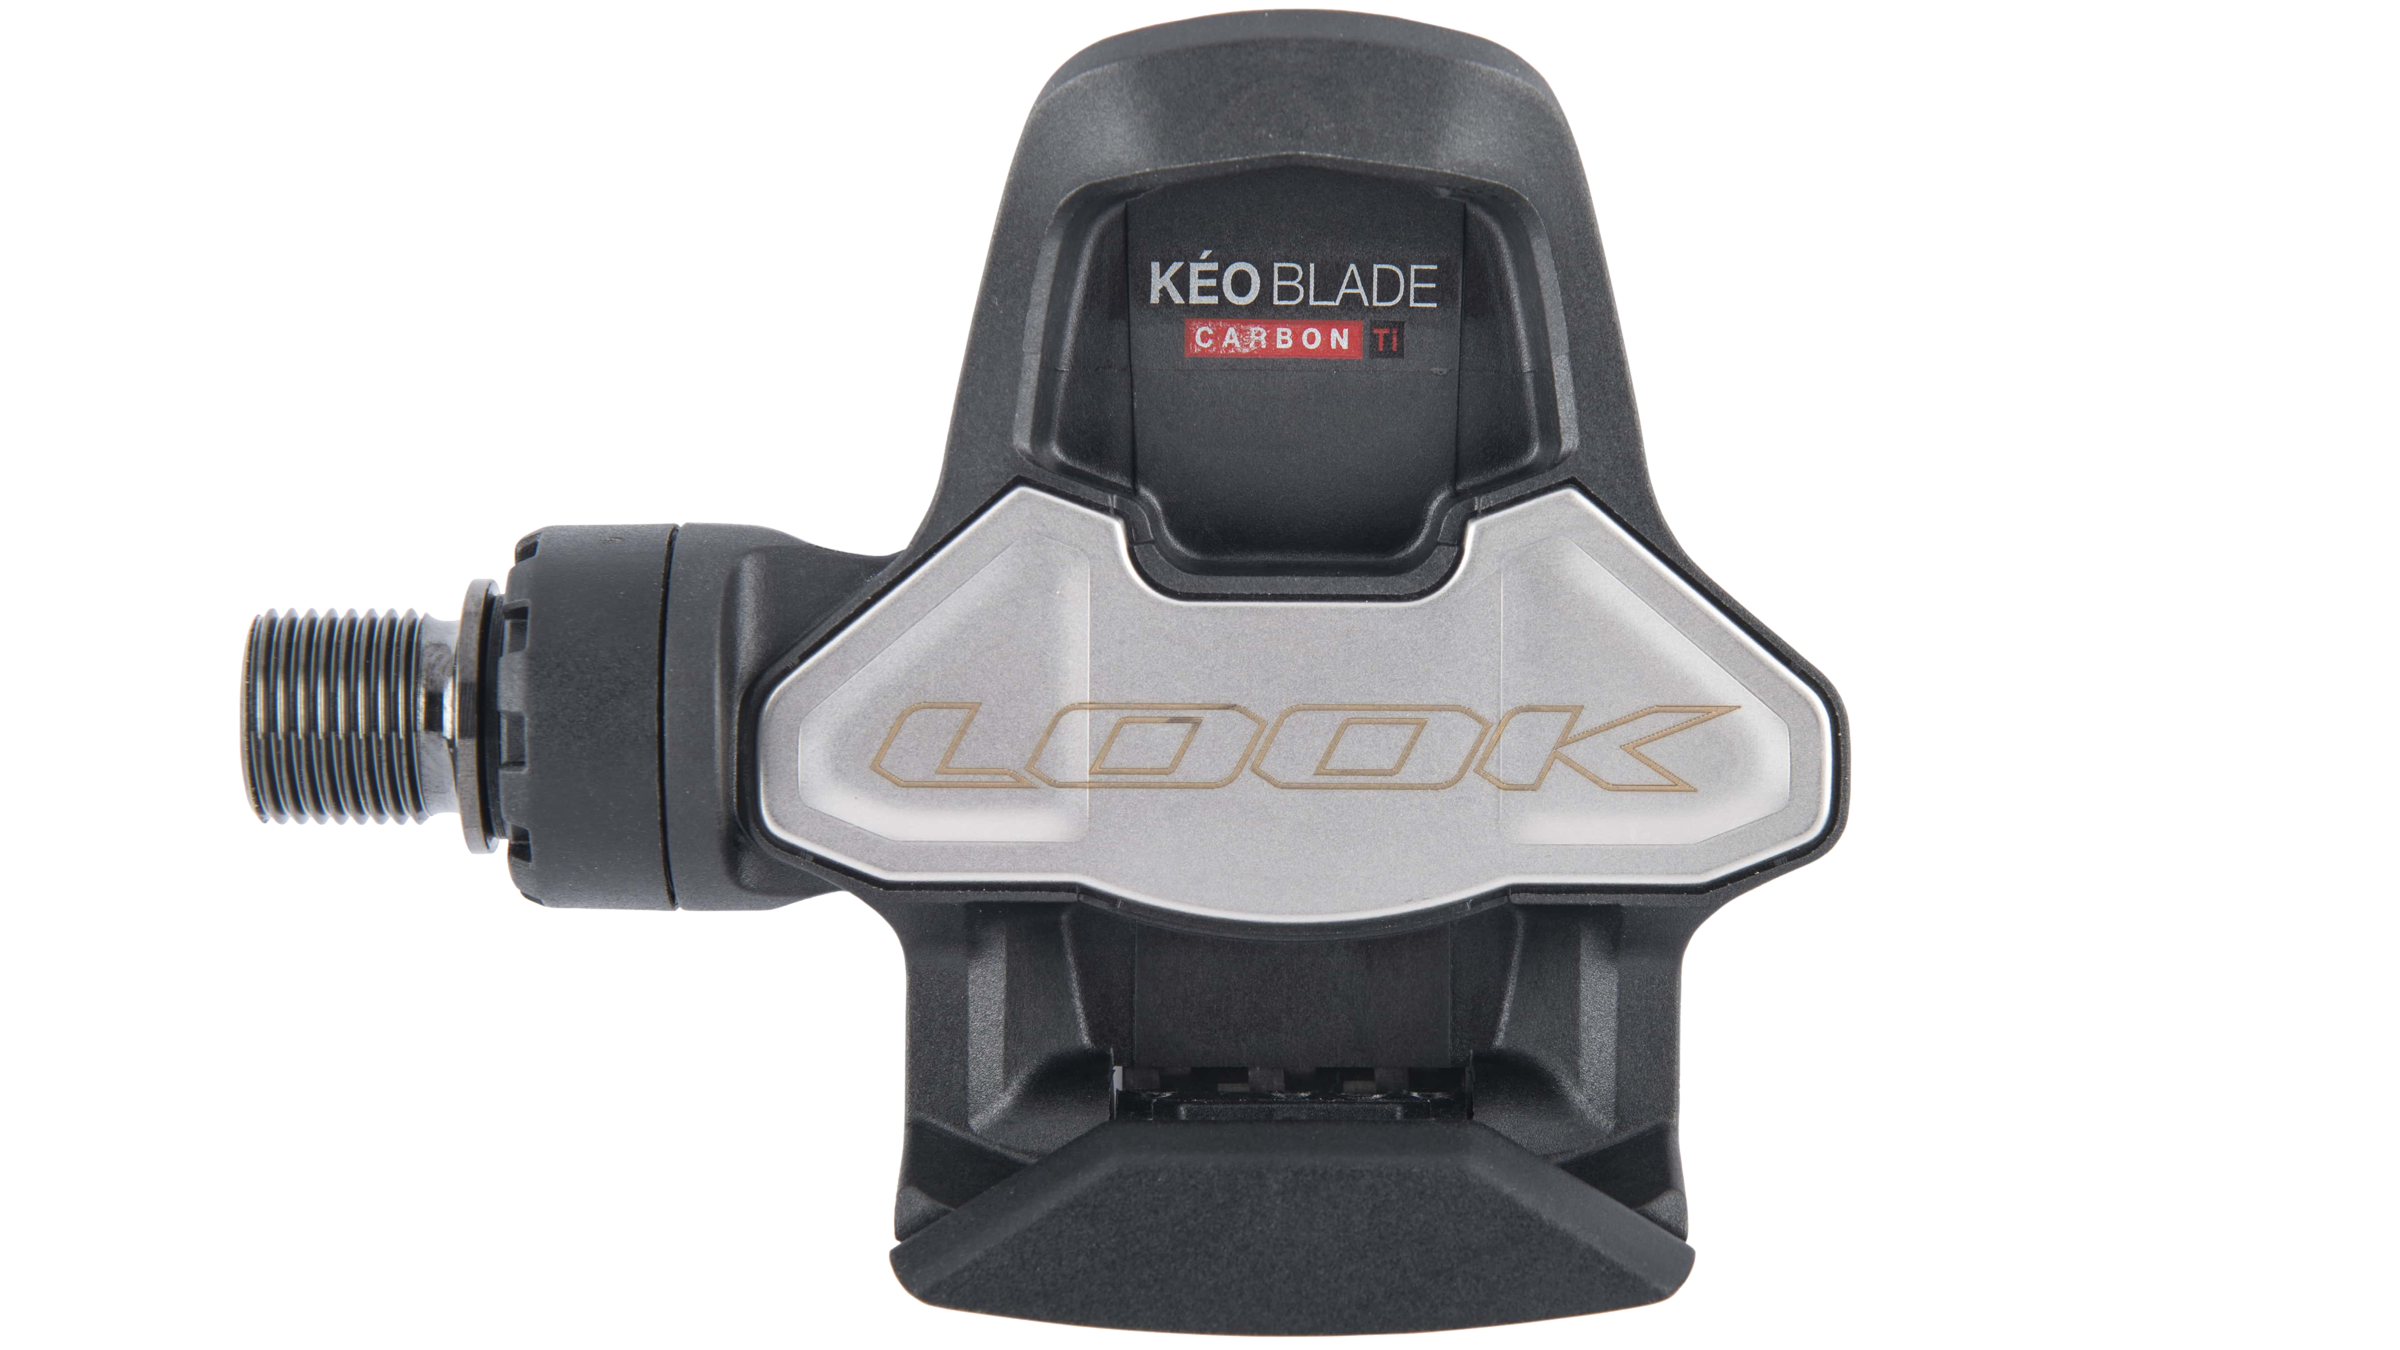 Black Look Keo Blade Carbon Ti Road Pedal